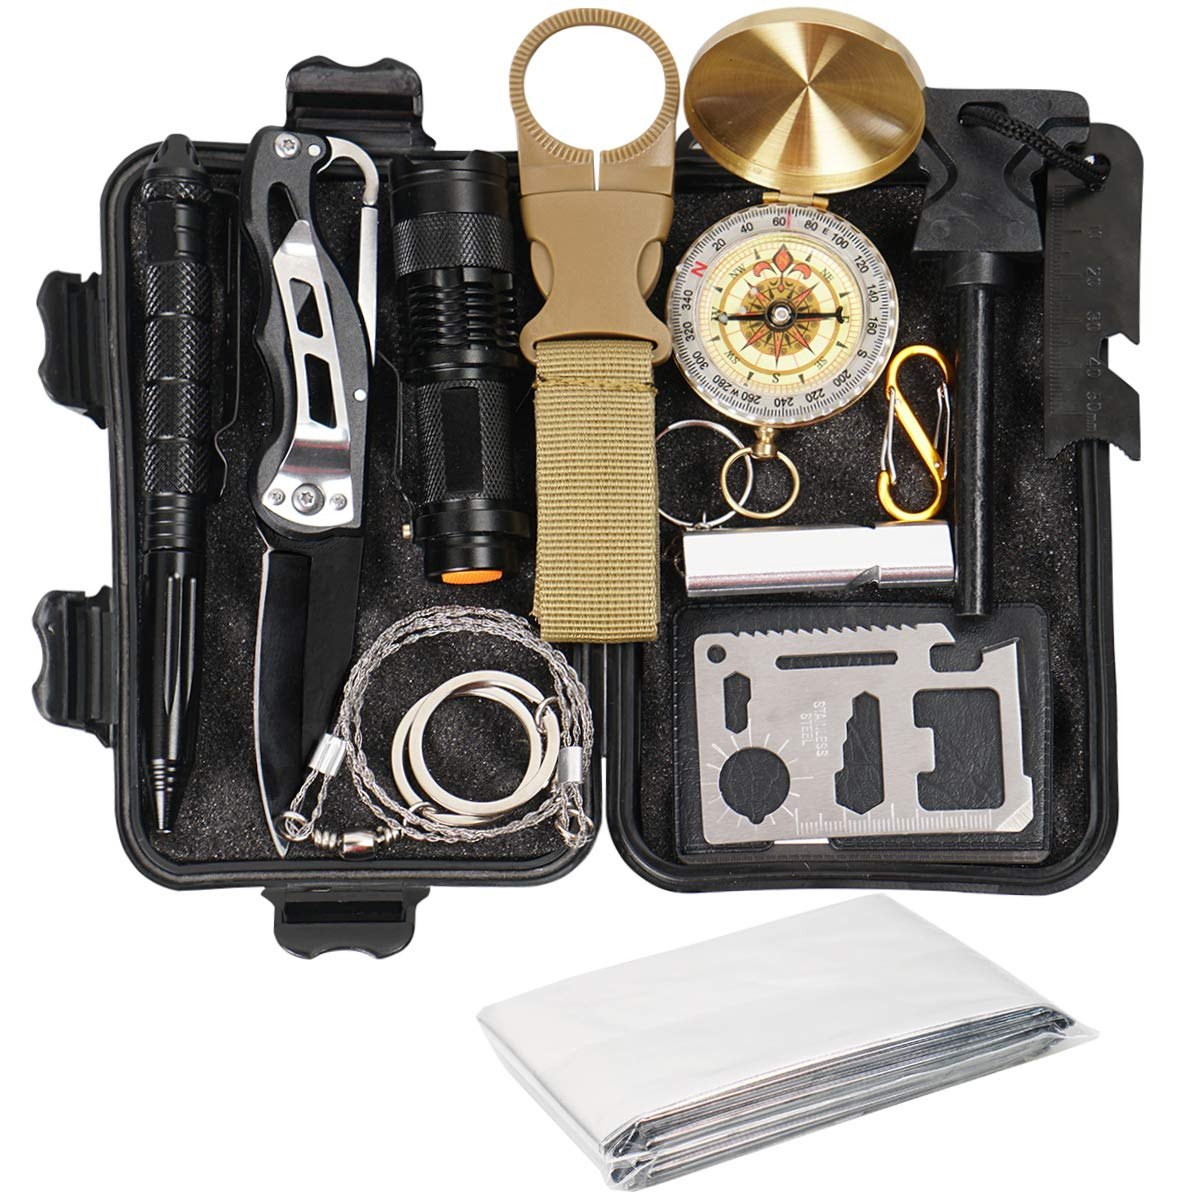 Your Choice Emergency Survival Kit 13 in 1, Camping Hunting Gear with Survival Blanket, Fire Starter, Whistle, Tactical Pen, Compass, Flashlight for Car Outdoor Adventures